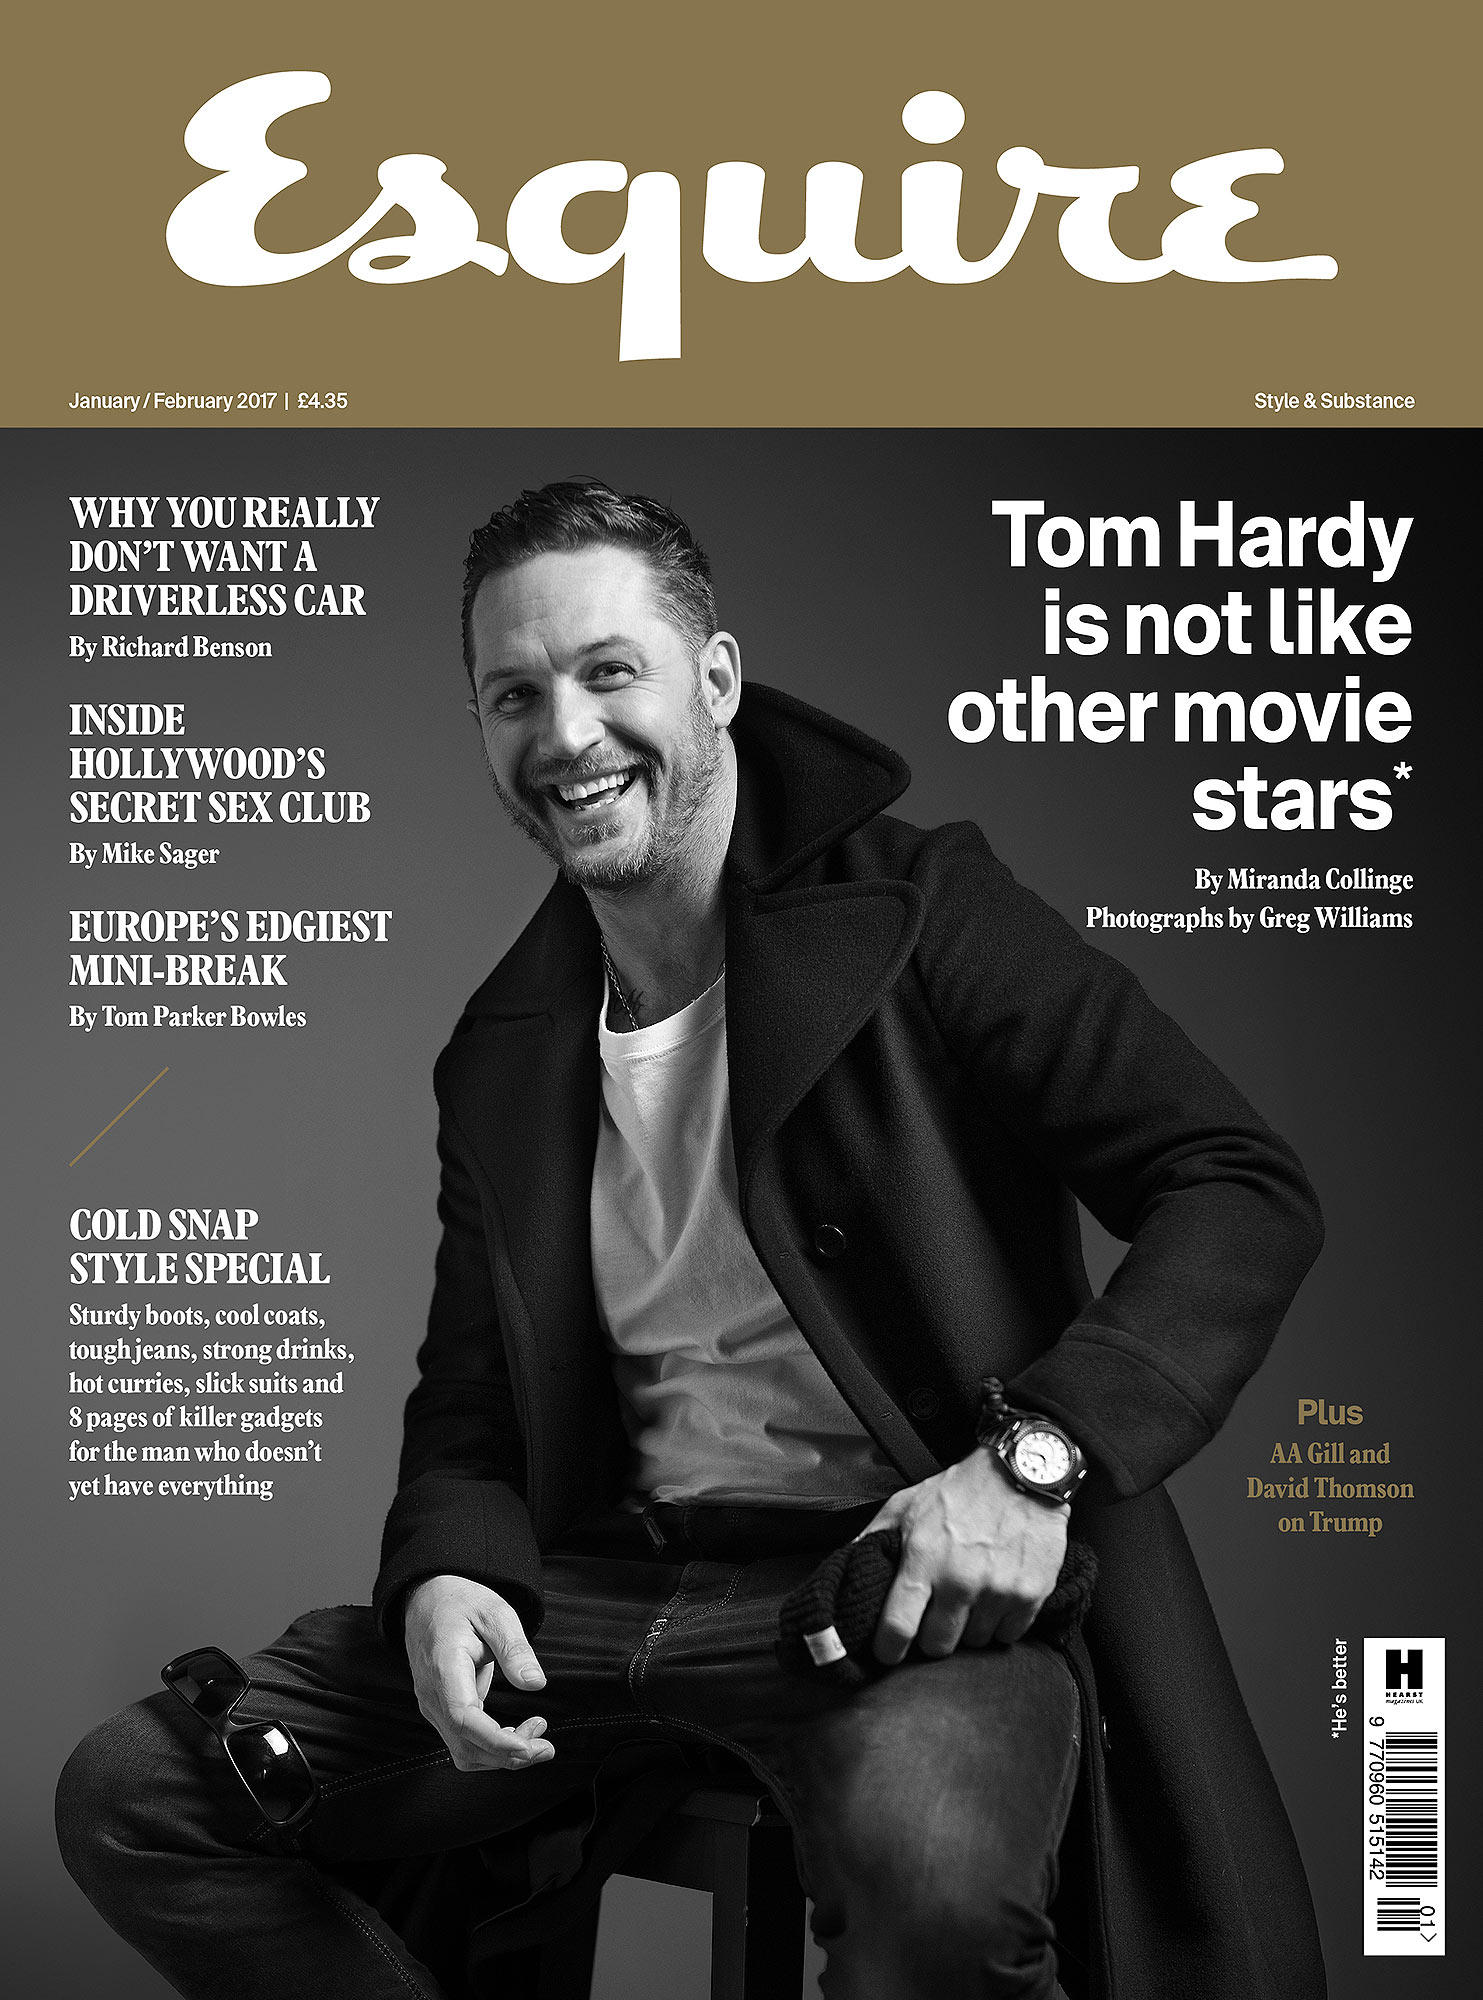 Tom Hardy's interview from Esquire UK - one story on his comments about being a dad and one on his tats.